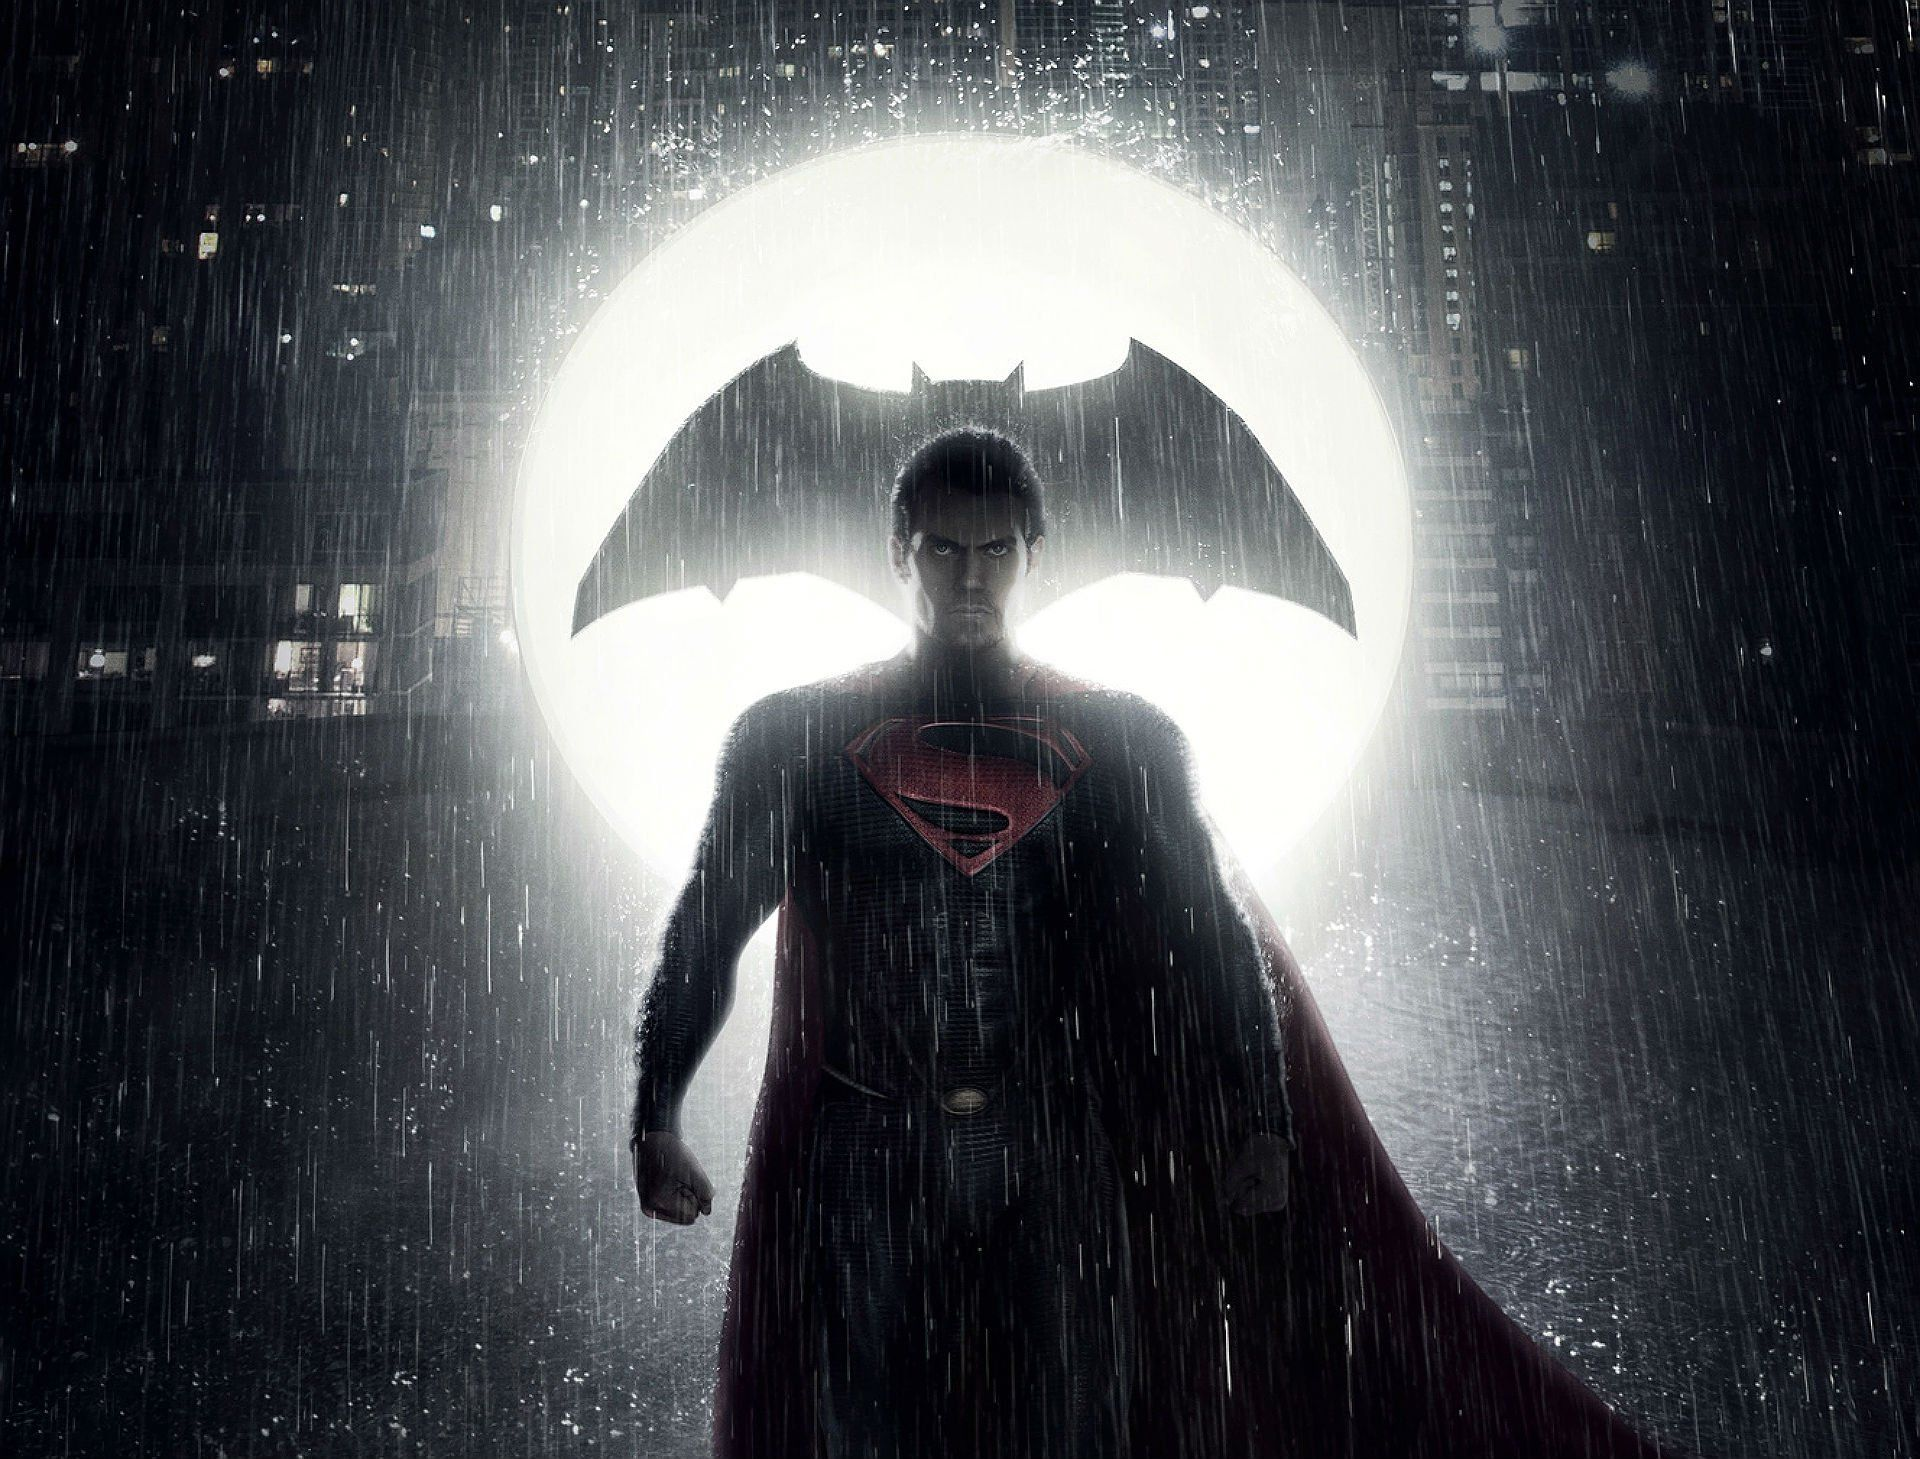 Batman v Superman image shows a massive Batman